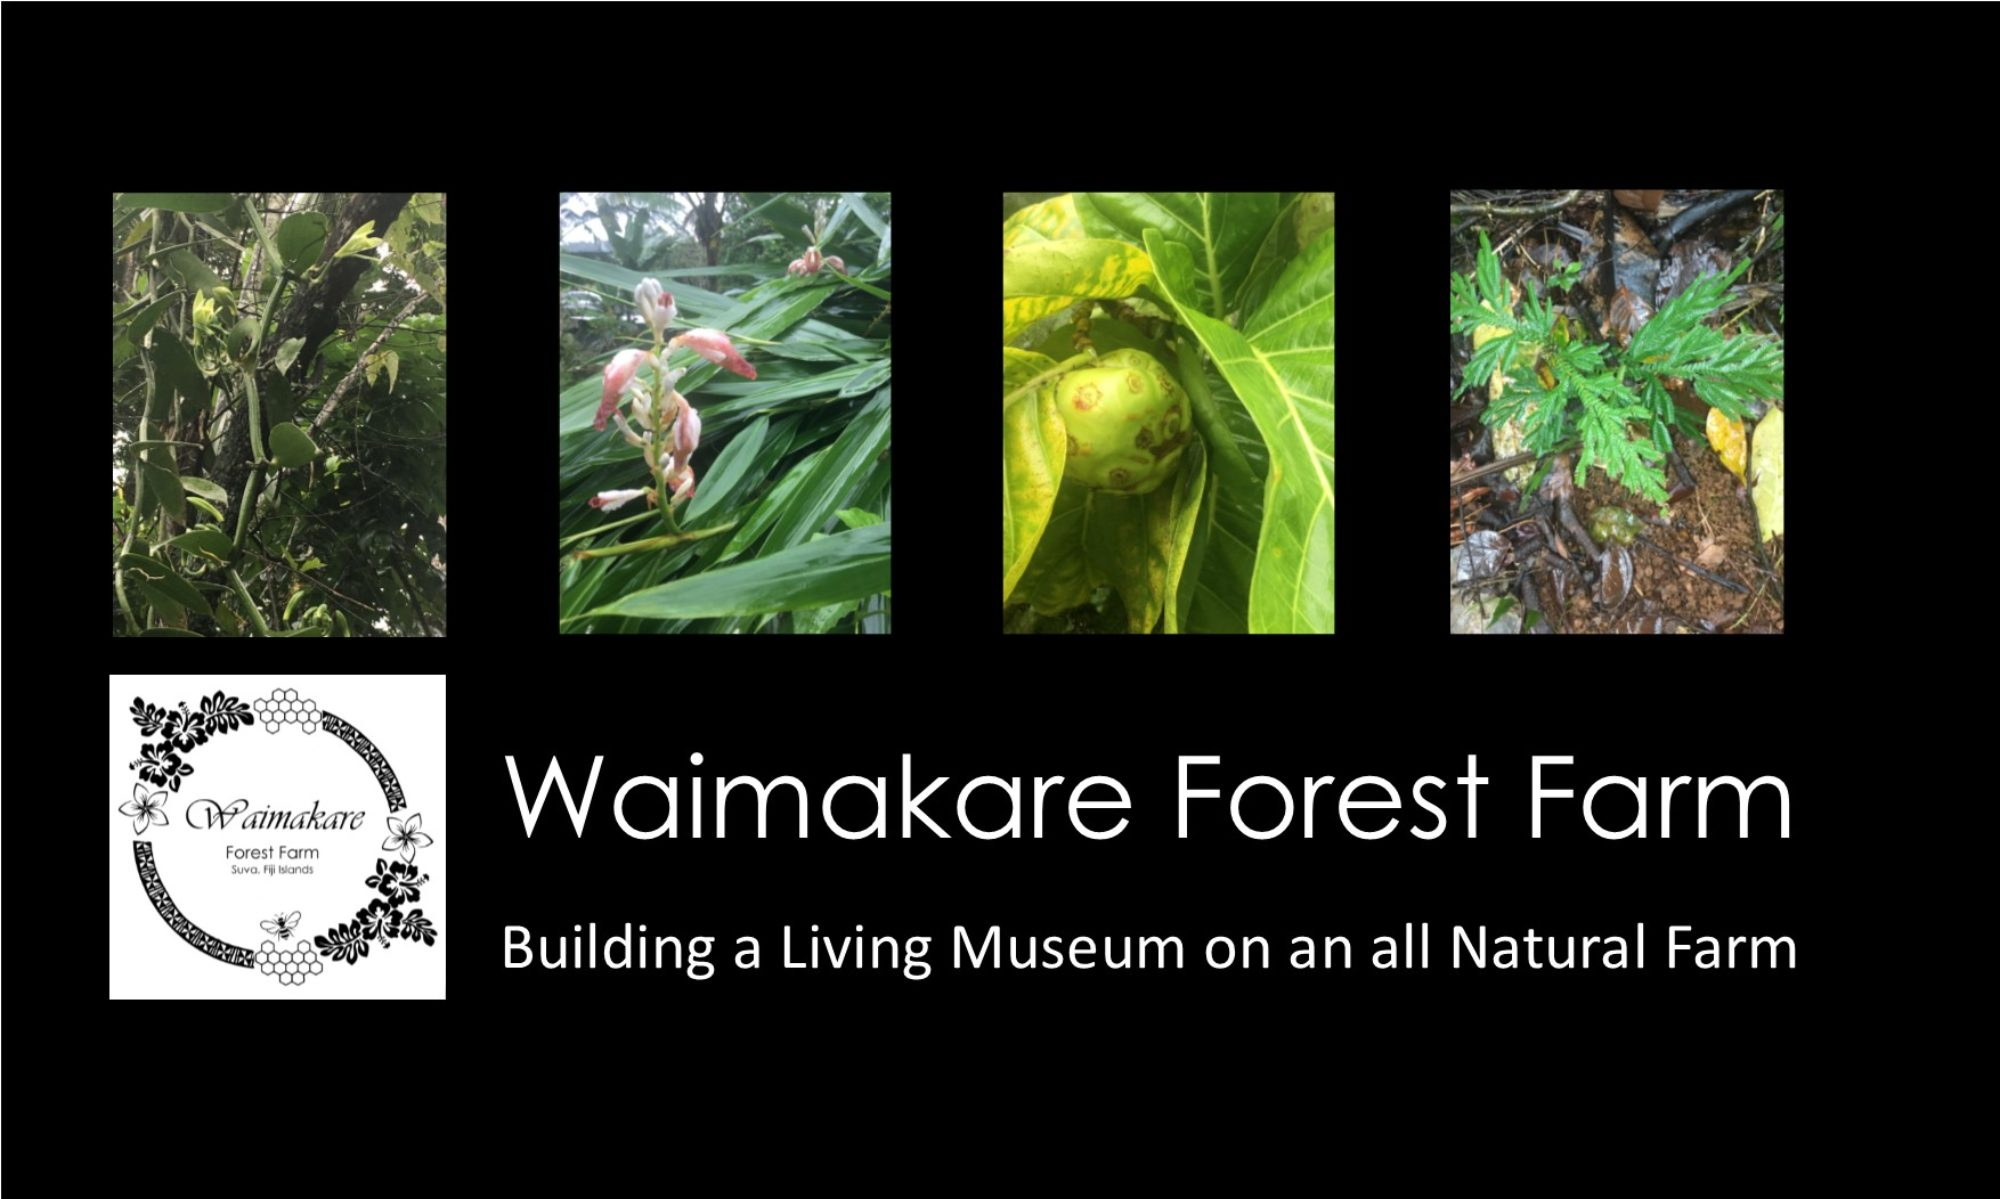 Waimakare Forest Farm